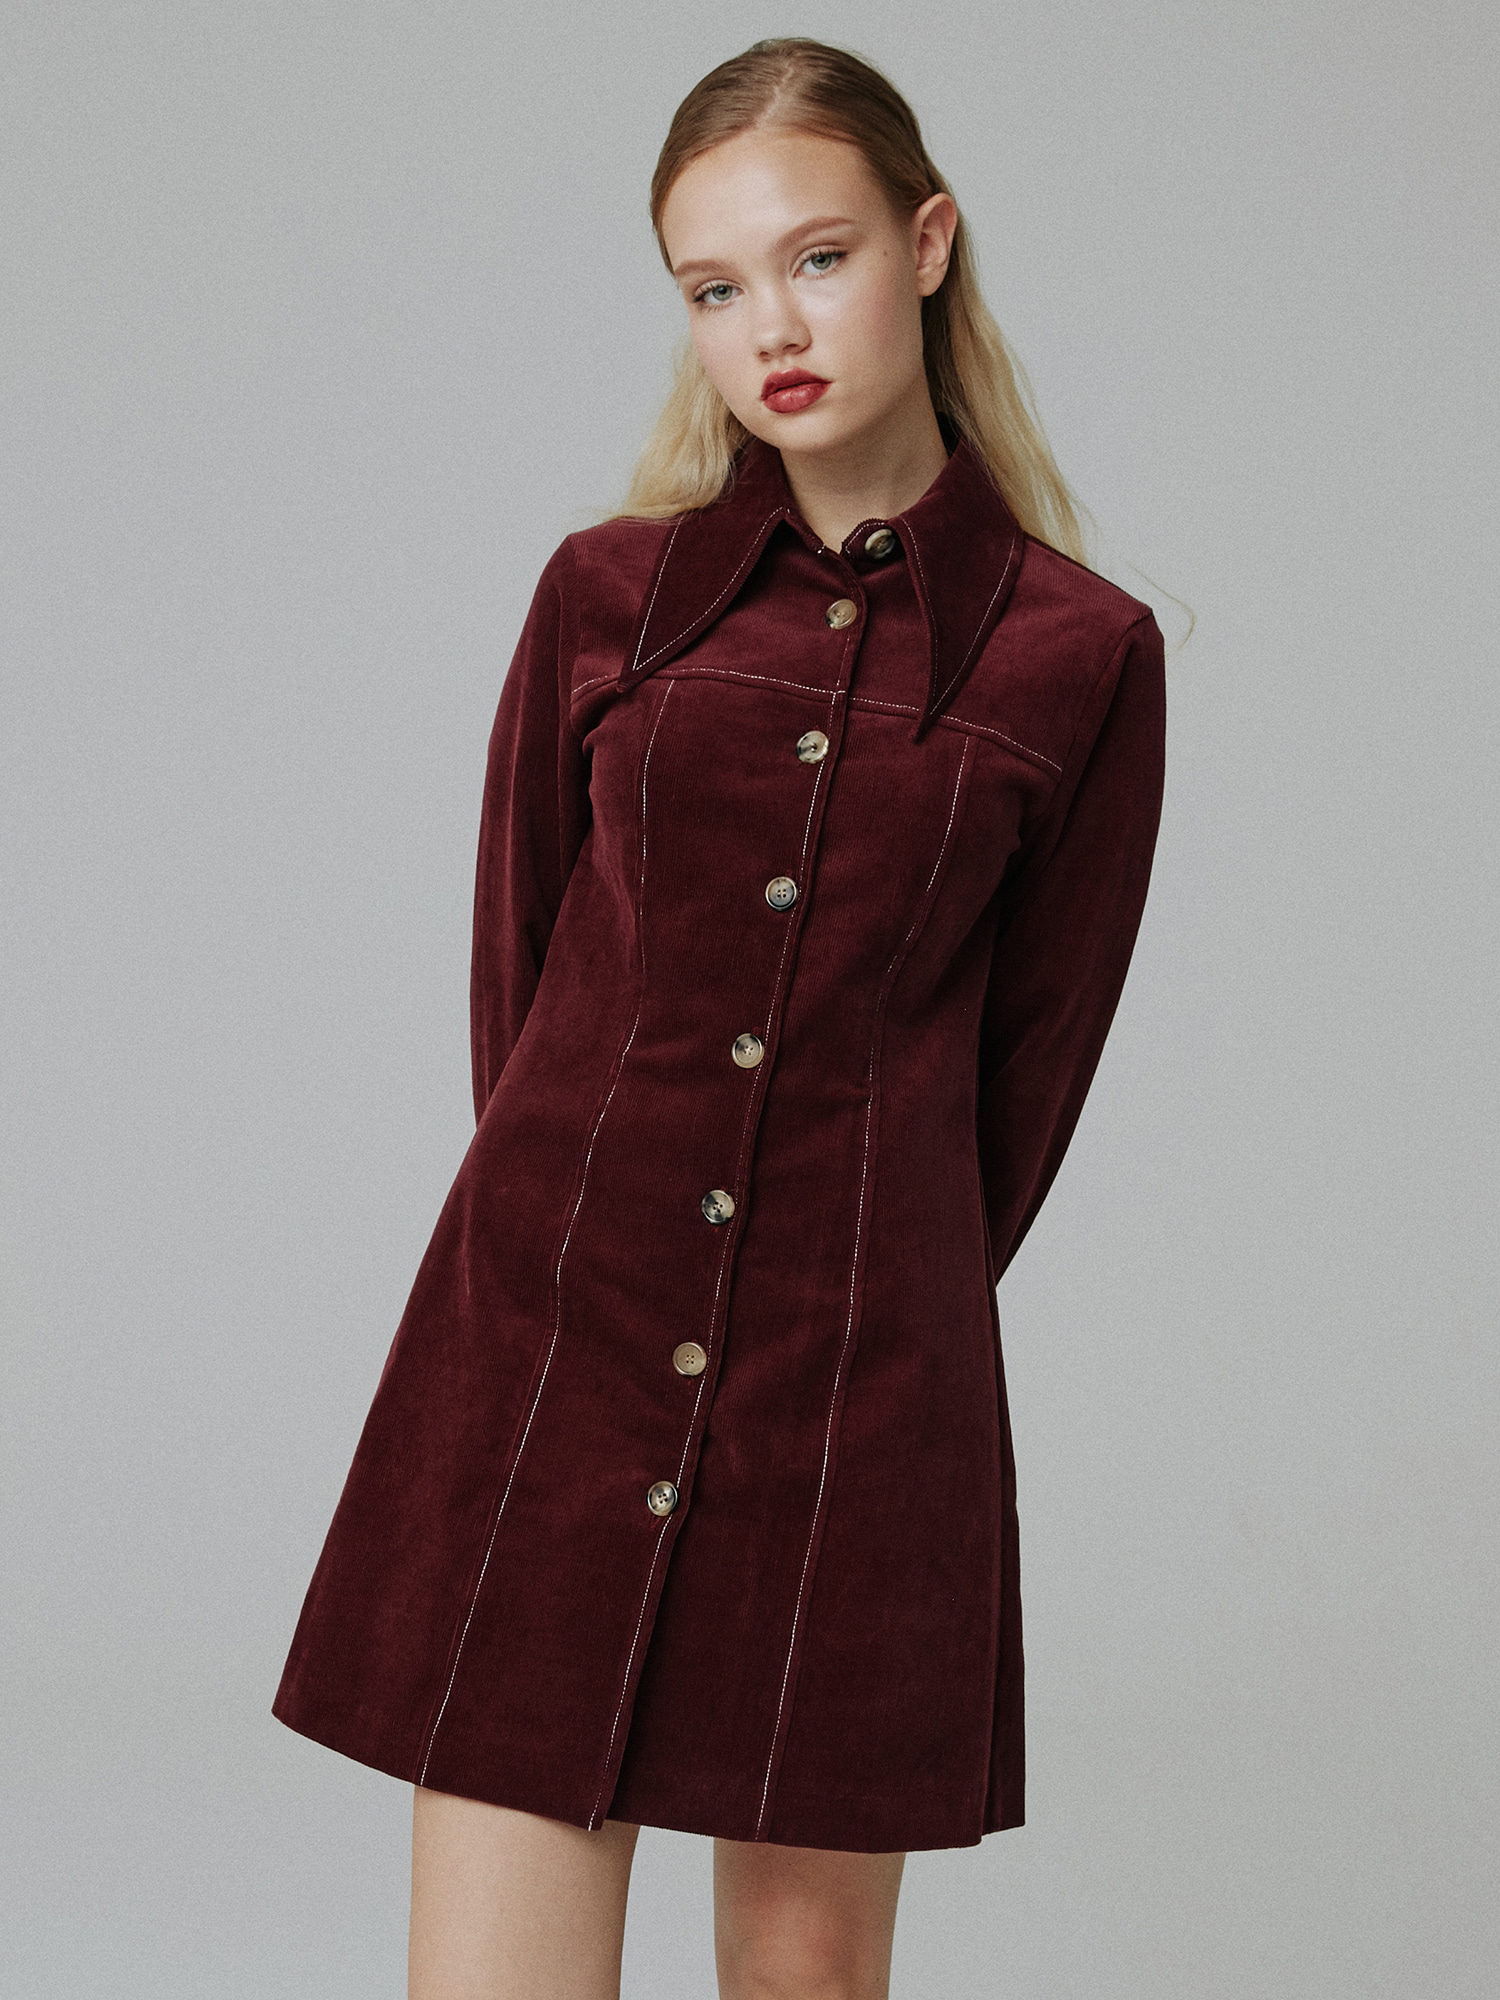 [SOLD OUT] Corduroy stitch one-piece_wine